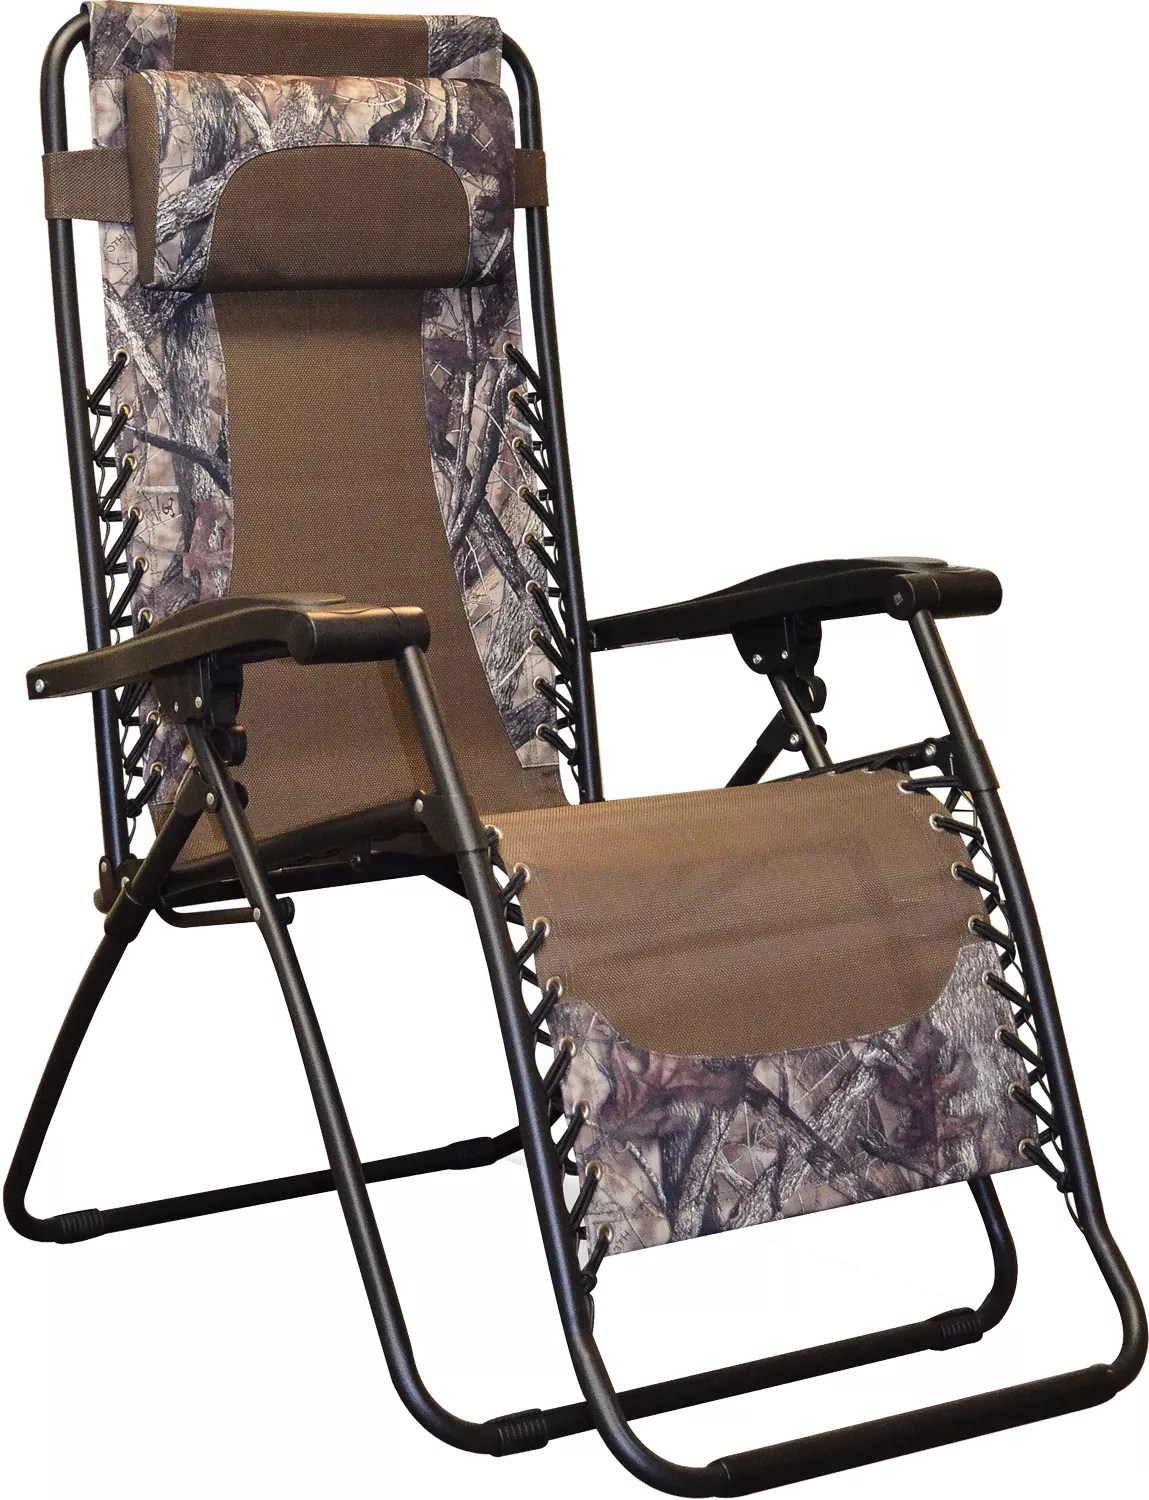 what is a zero gravity chair wholesale party tables and chairs caravan sports camo infinity dick s sporting goods noimagefound 1